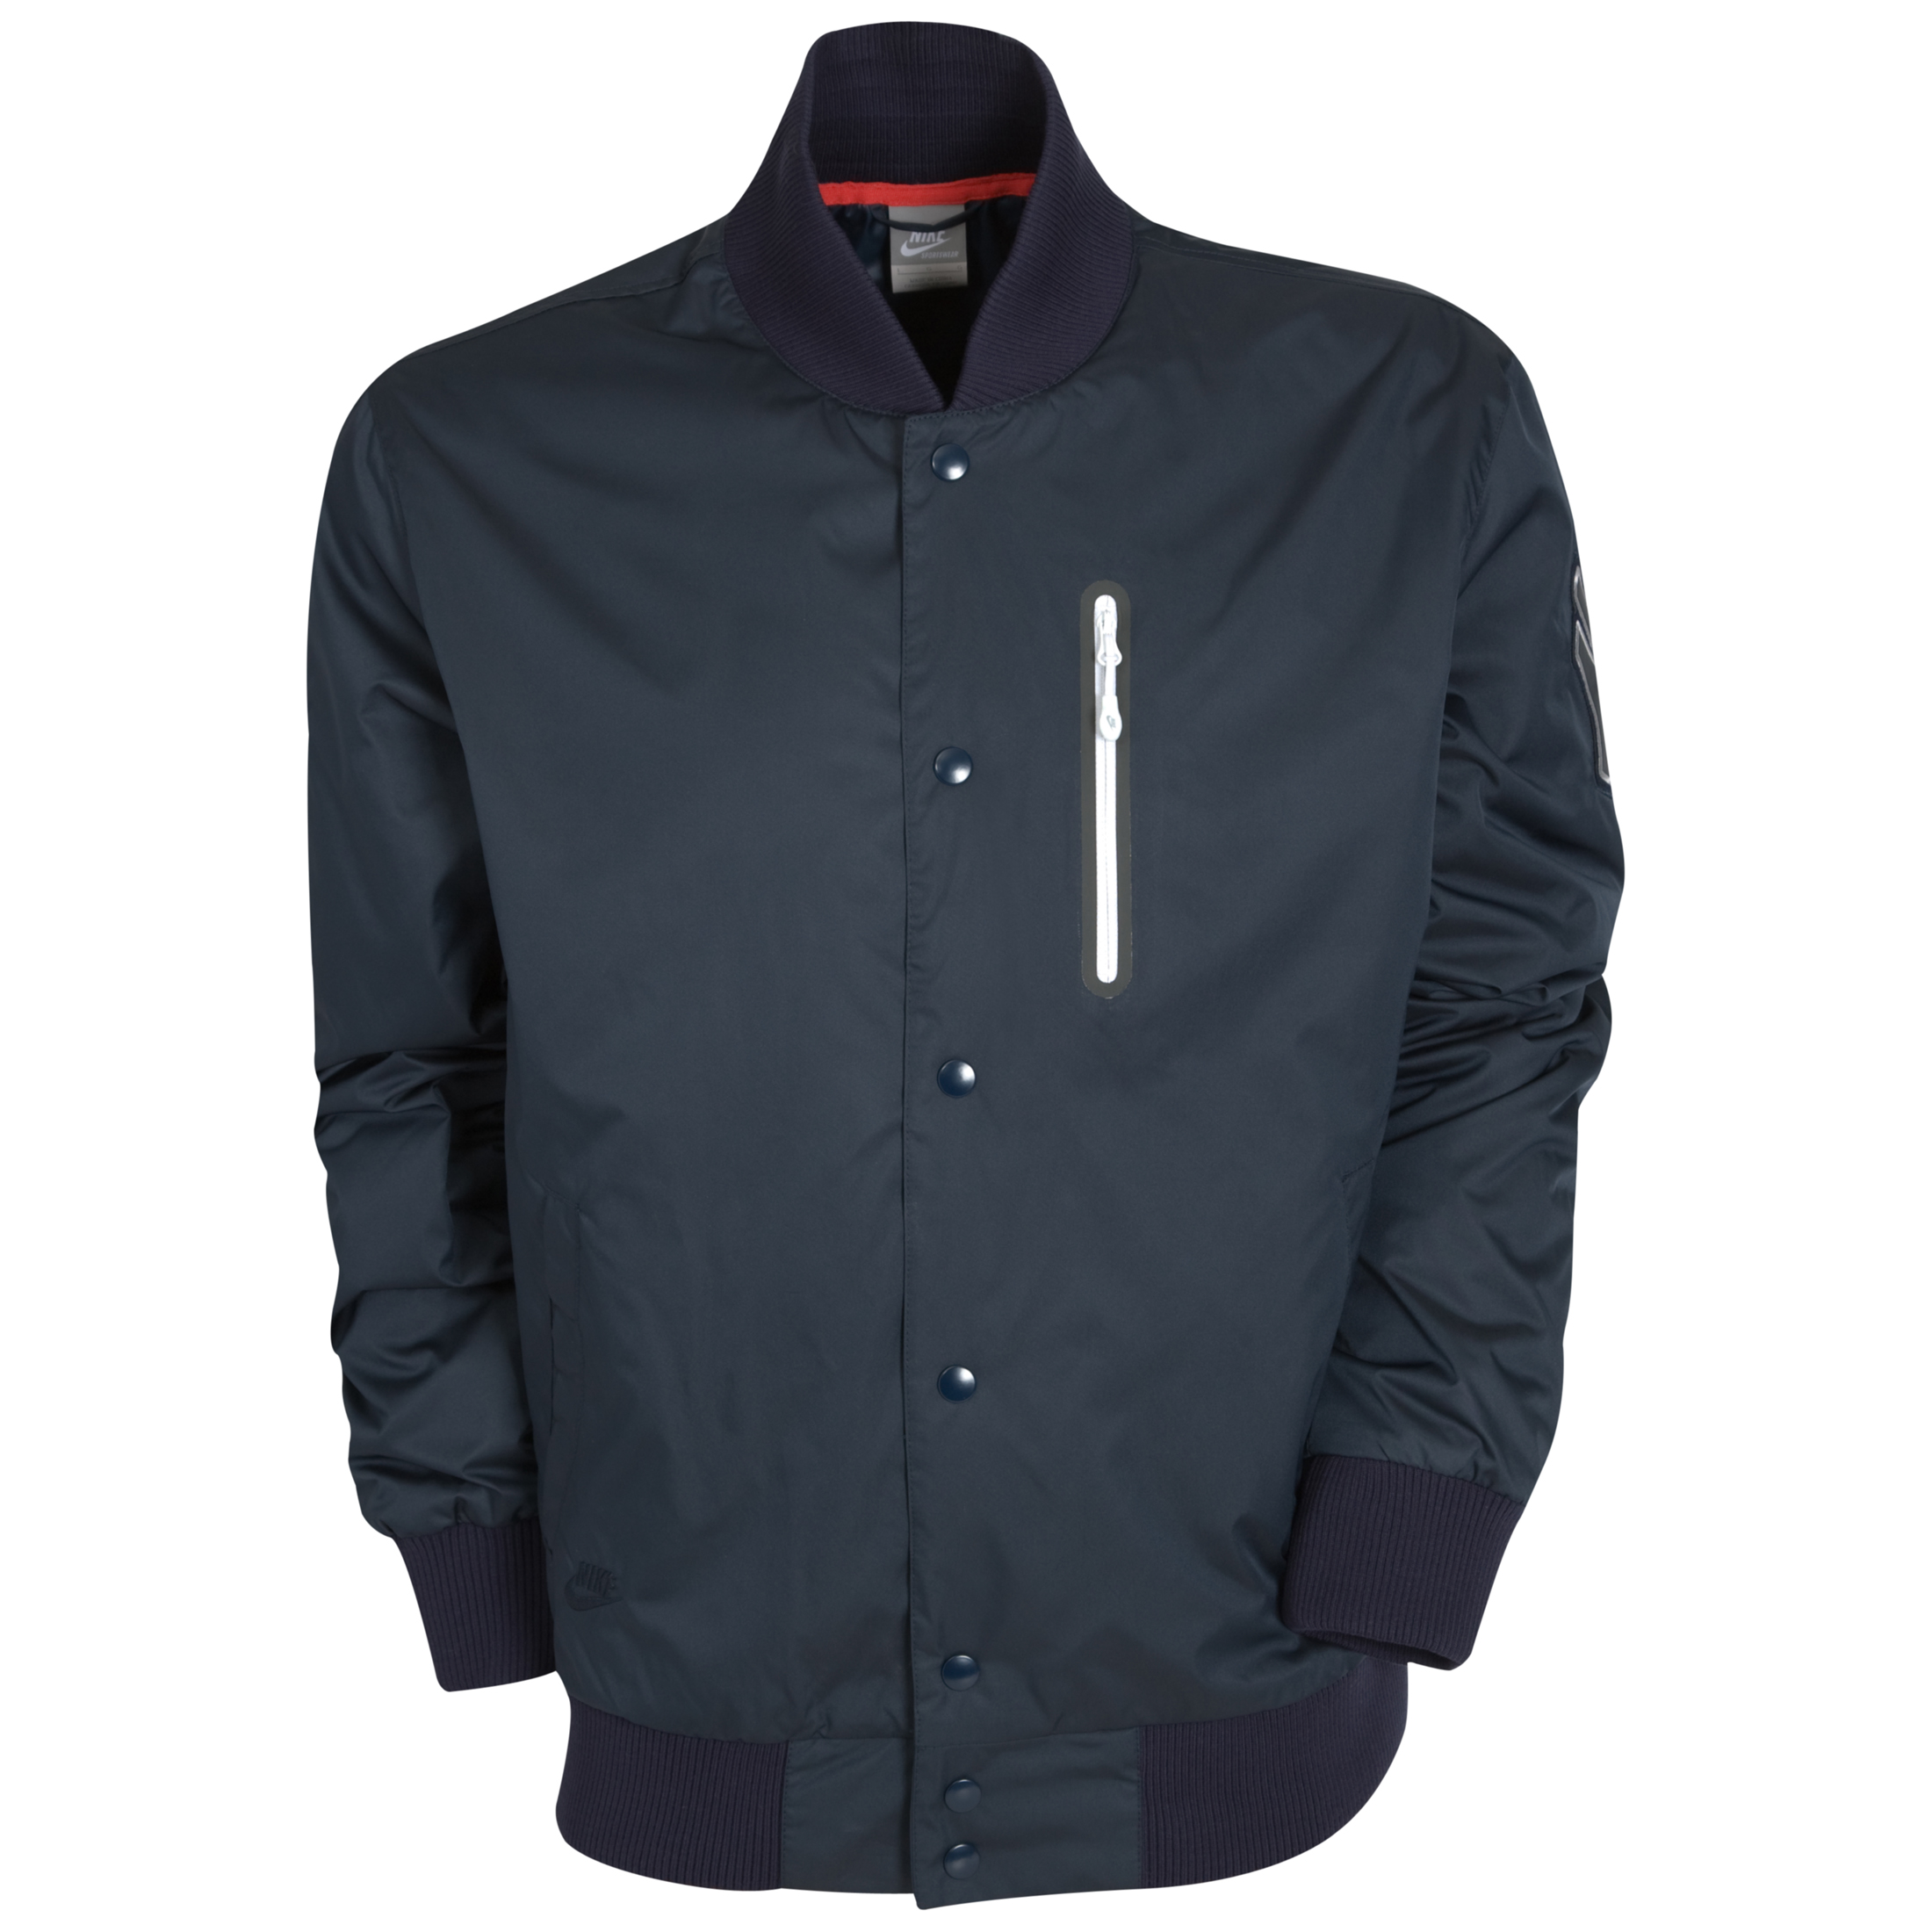 Nike Yankees Destroyer Jacket - Dark Obsidian/Sport Red